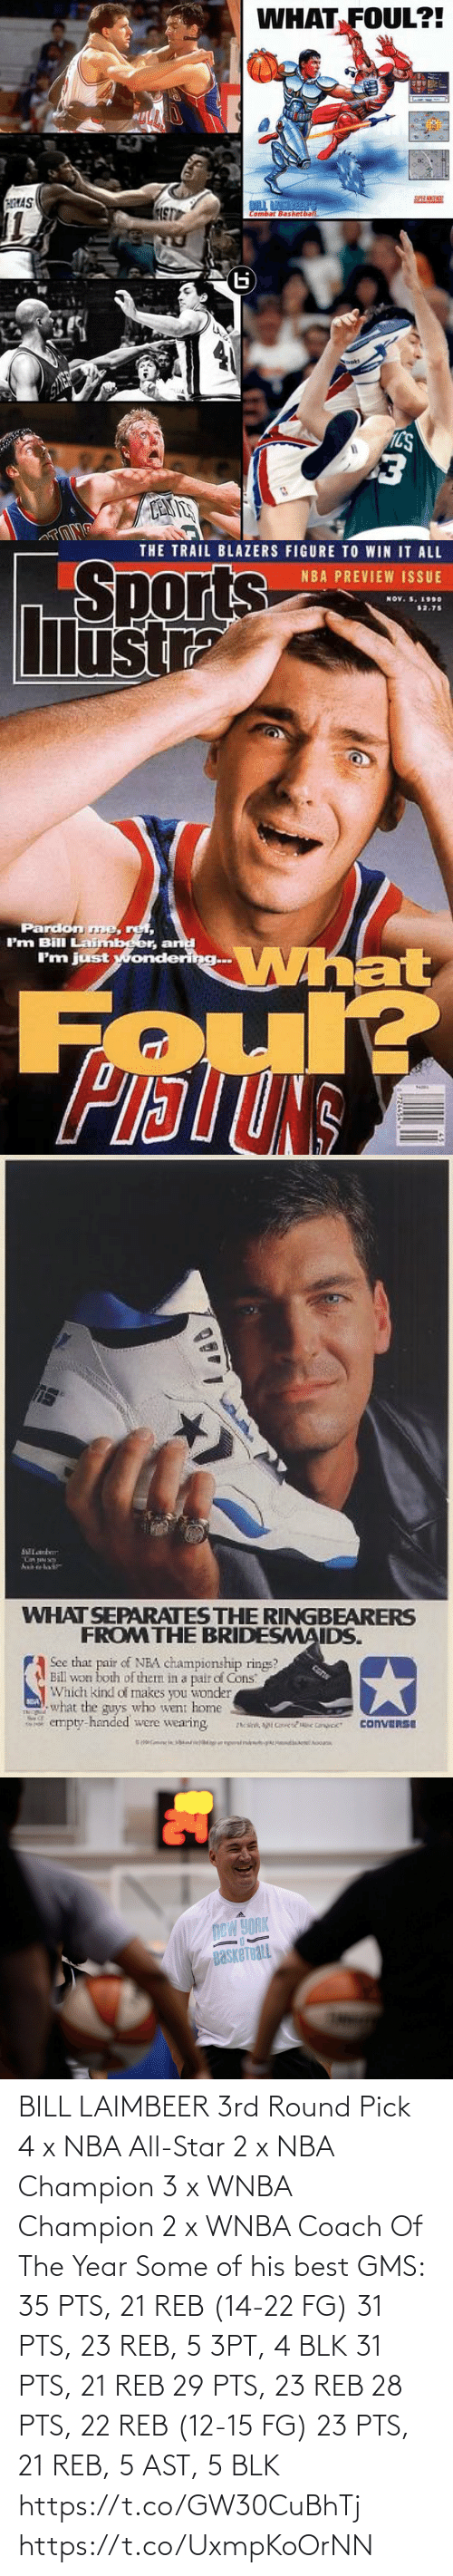 nba all star: BILL LAIMBEER  3rd Round Pick 4 x NBA All-Star  2 x NBA Champion 3 x WNBA Champion  2 x WNBA Coach Of The Year   Some of his best GMS: 35 PTS, 21 REB (14-22 FG) 31 PTS, 23 REB, 5 3PT, 4 BLK 31 PTS, 21 REB 29 PTS, 23 REB 28 PTS, 22 REB (12-15 FG) 23 PTS, 21 REB, 5 AST, 5 BLK https://t.co/GW30CuBhTj https://t.co/UxmpKoOrNN